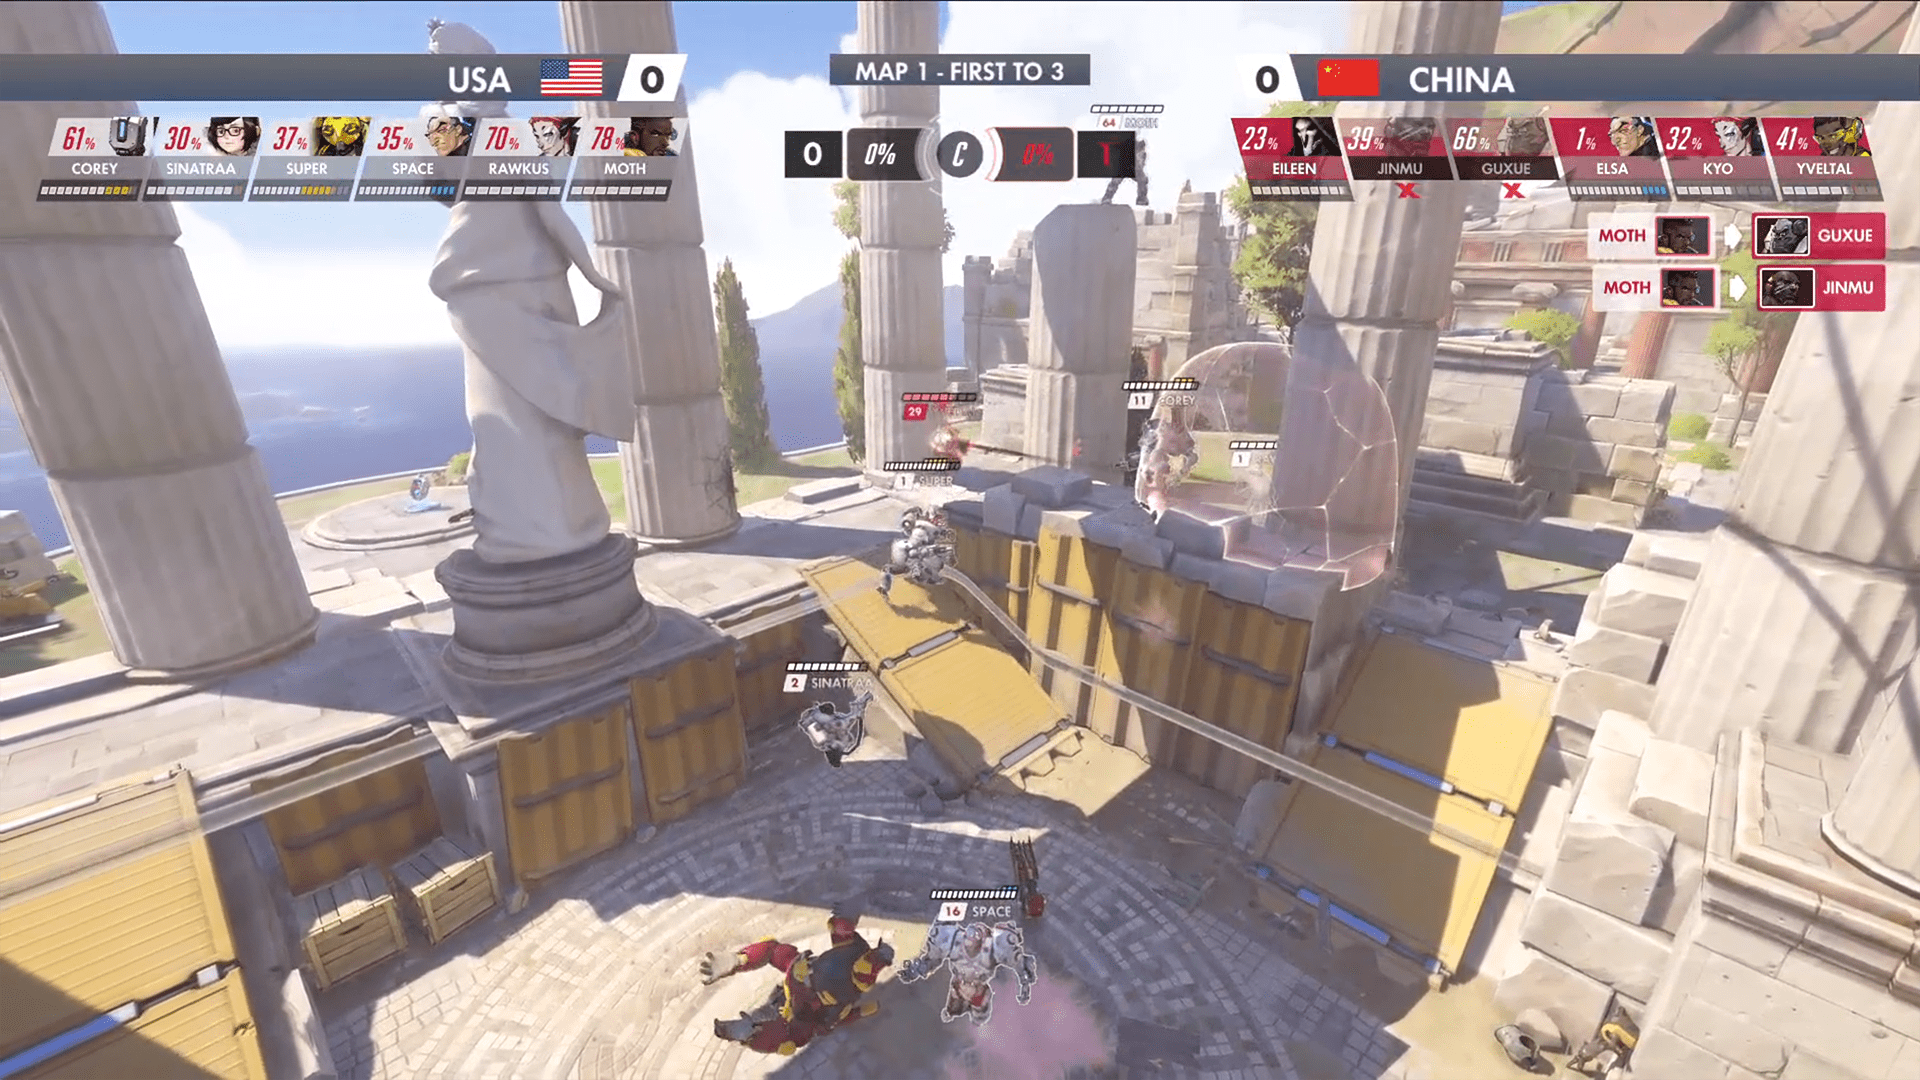 The 2019 Overwatch World Cup Ends With A Dramatic Showdown Between Team USA Versus Team China